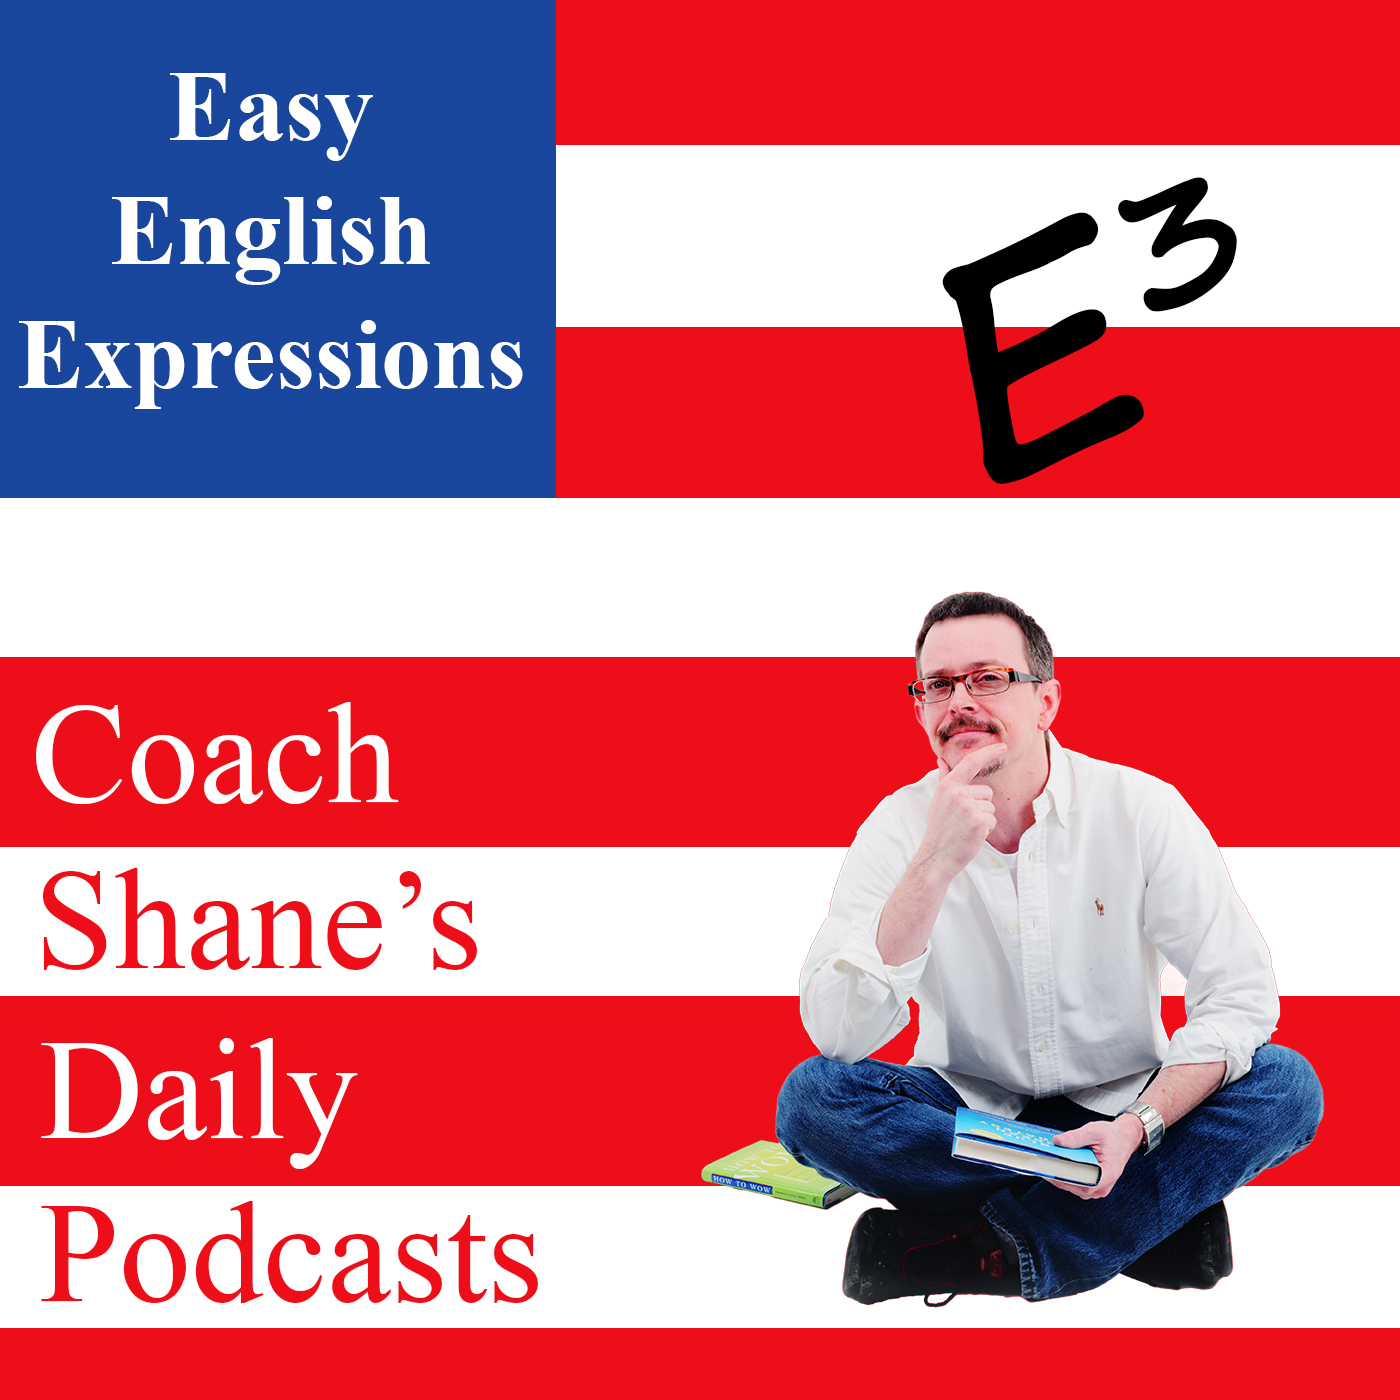 07 Daily Easy English Expression PODCAST--My knee went out.